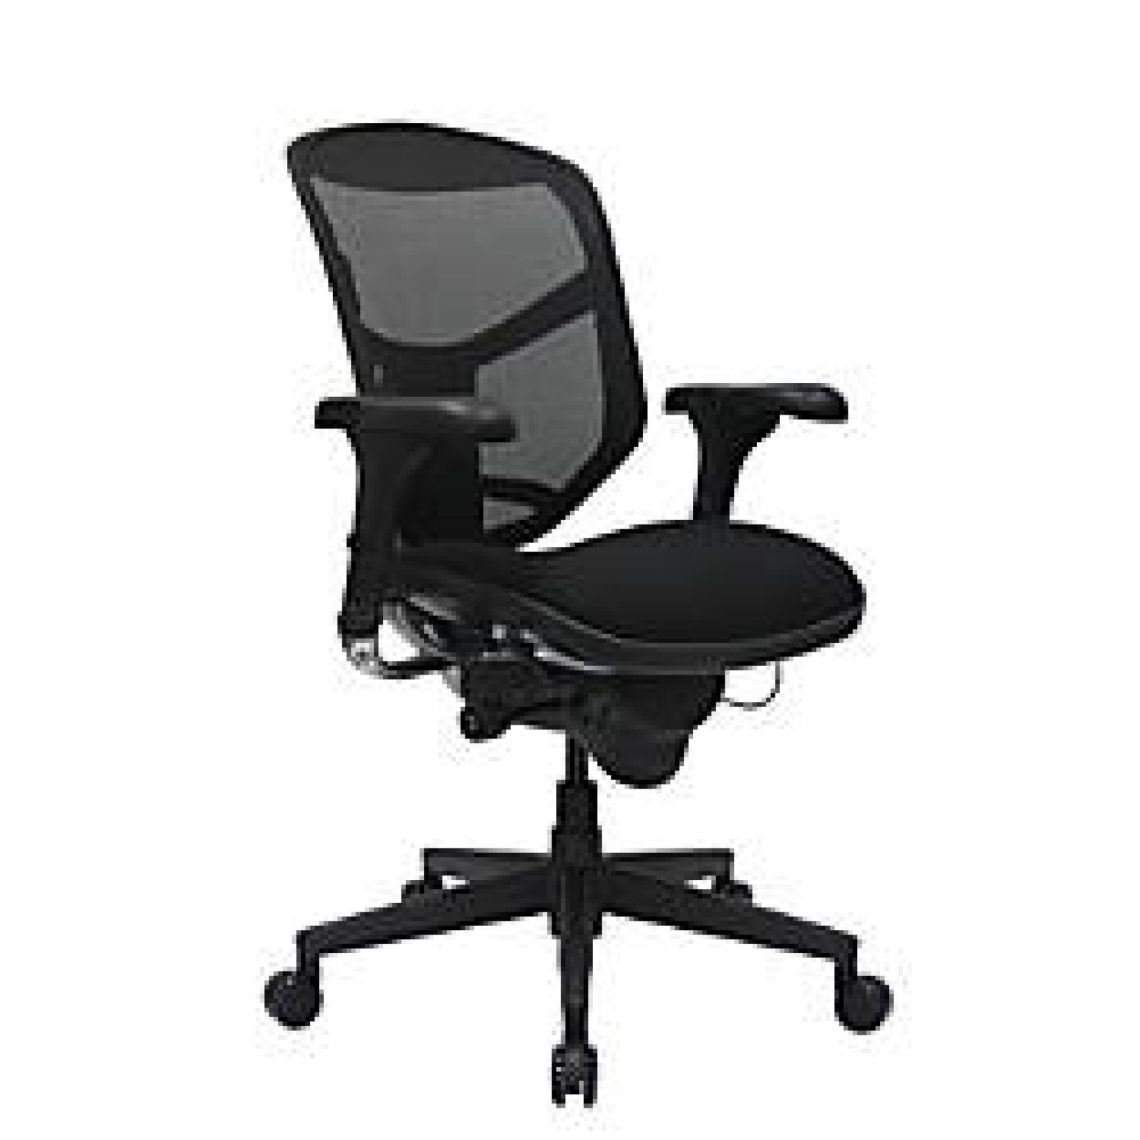 WorkPro Quantum 9000 Series Ergonomic Mid Back MeshFabric Chair Black by Office Depot & OfficeMax